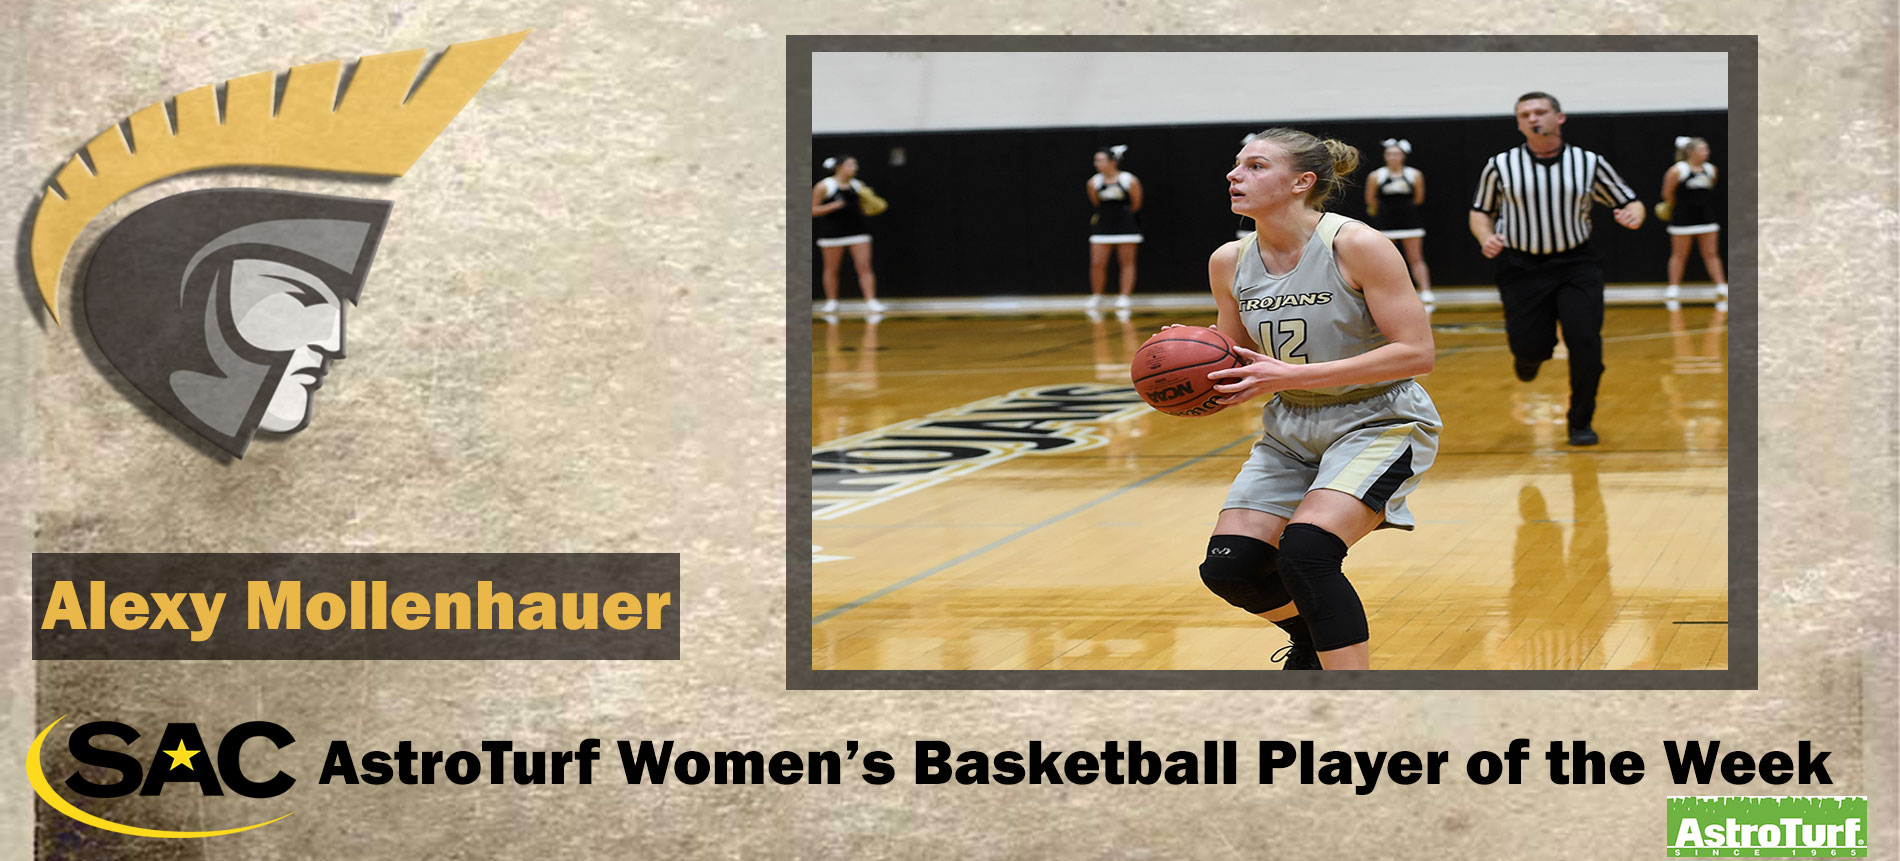 Mollenhauer Earns South Atlantic Conference AstroTurf Women's Basketball Player of the Week